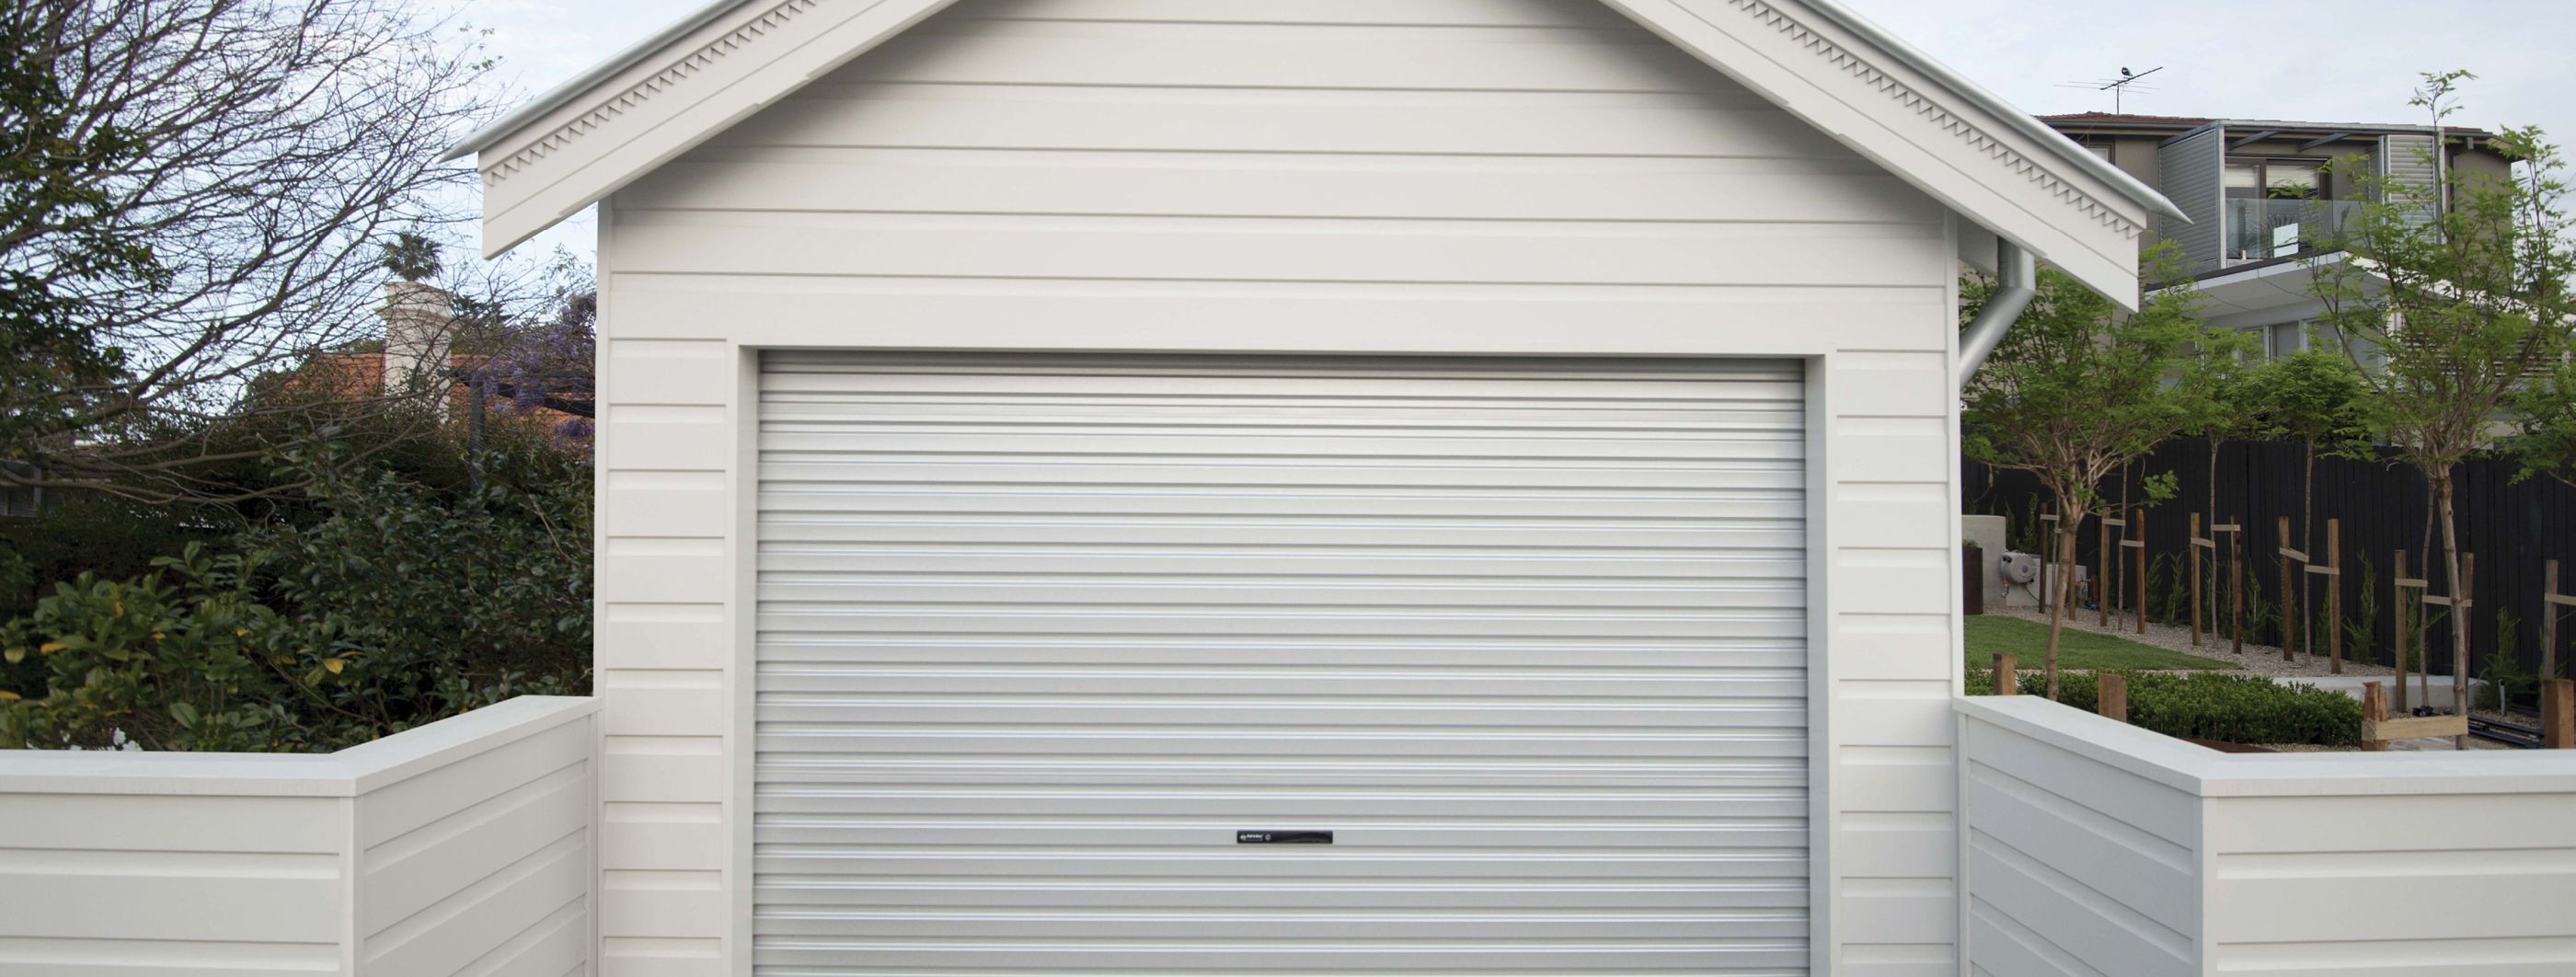 door types residential products company lincoln commercial of garage doors overhead